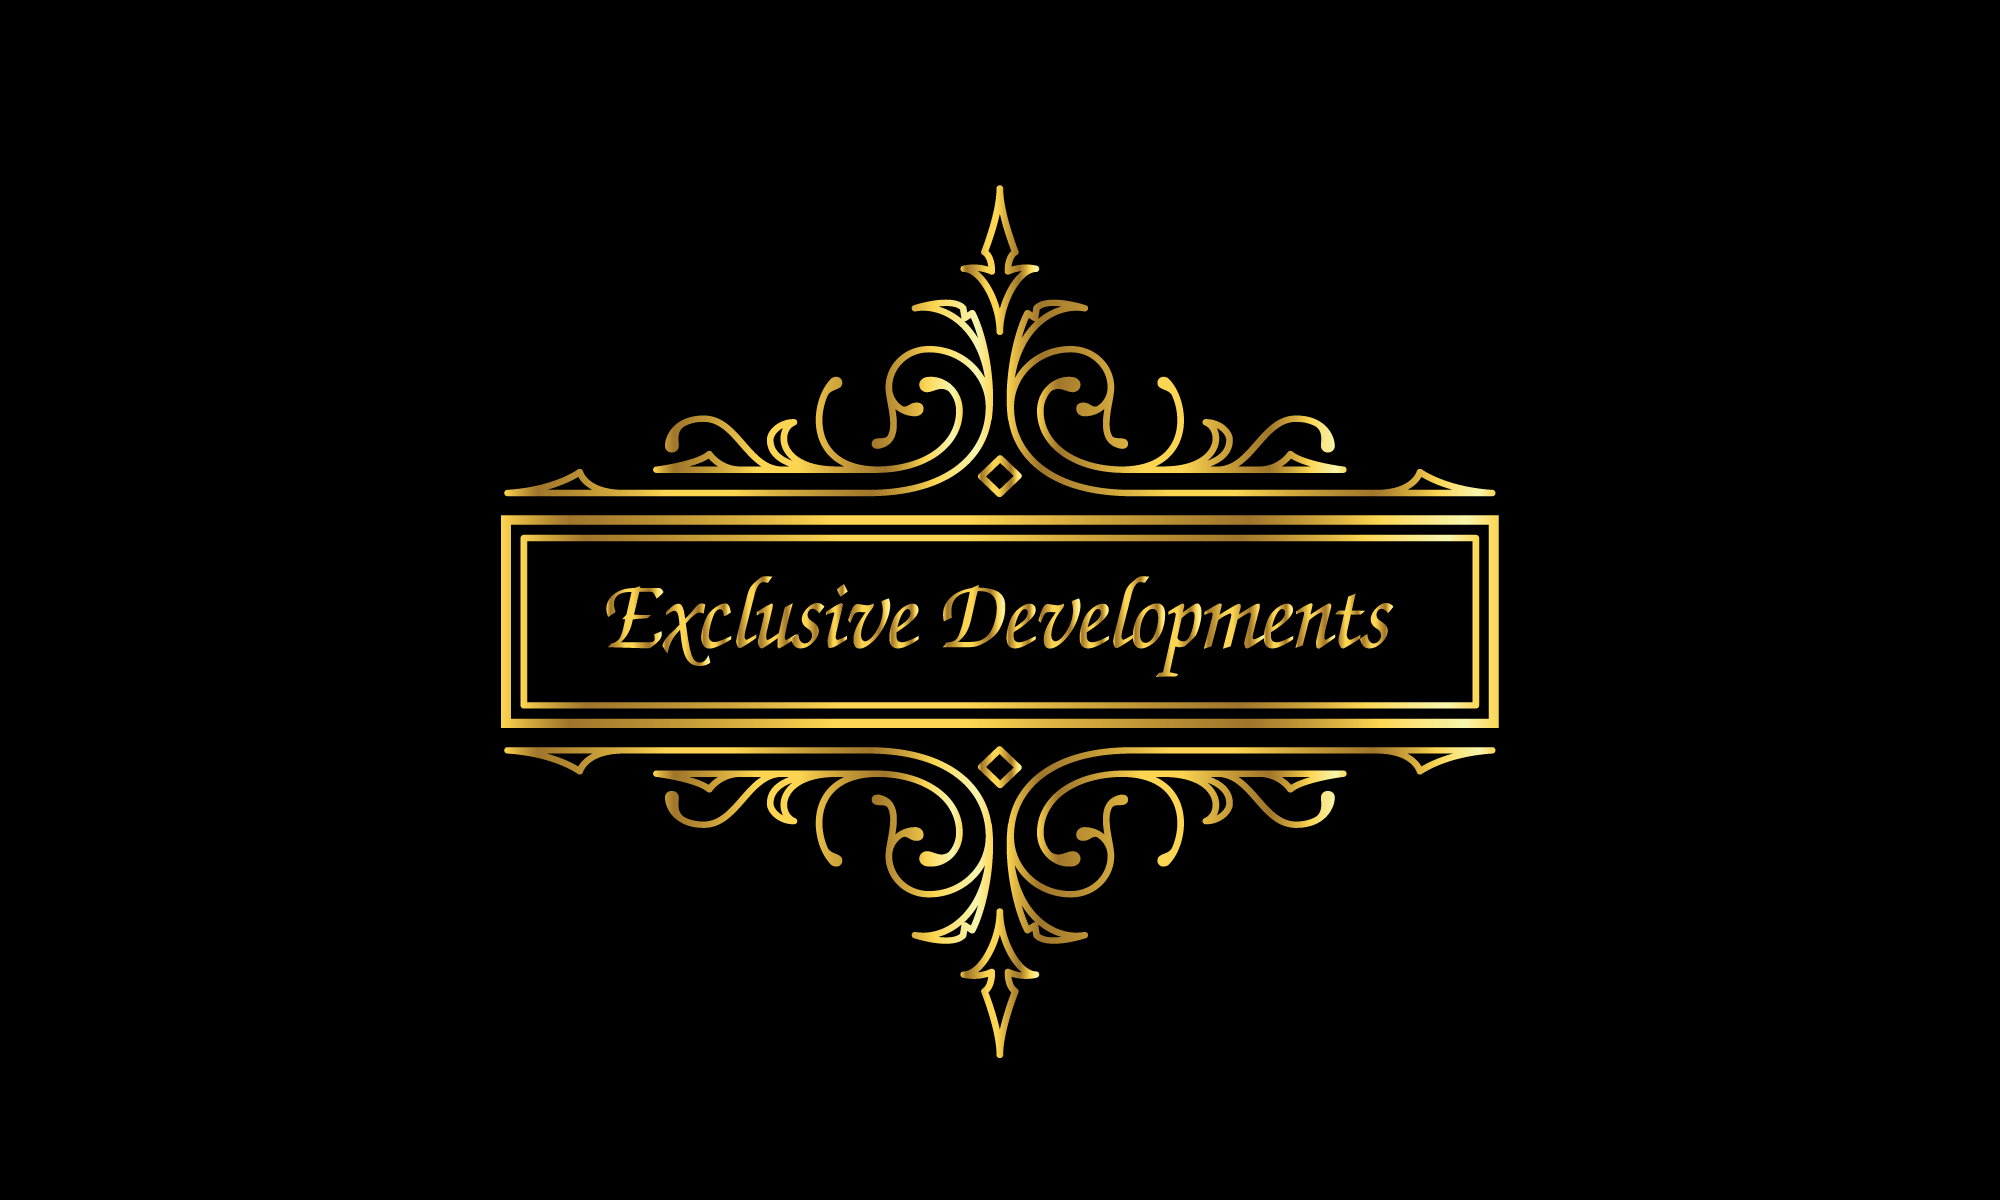 Exclusive Developments - Luxury Property Development by Thai-Real.com